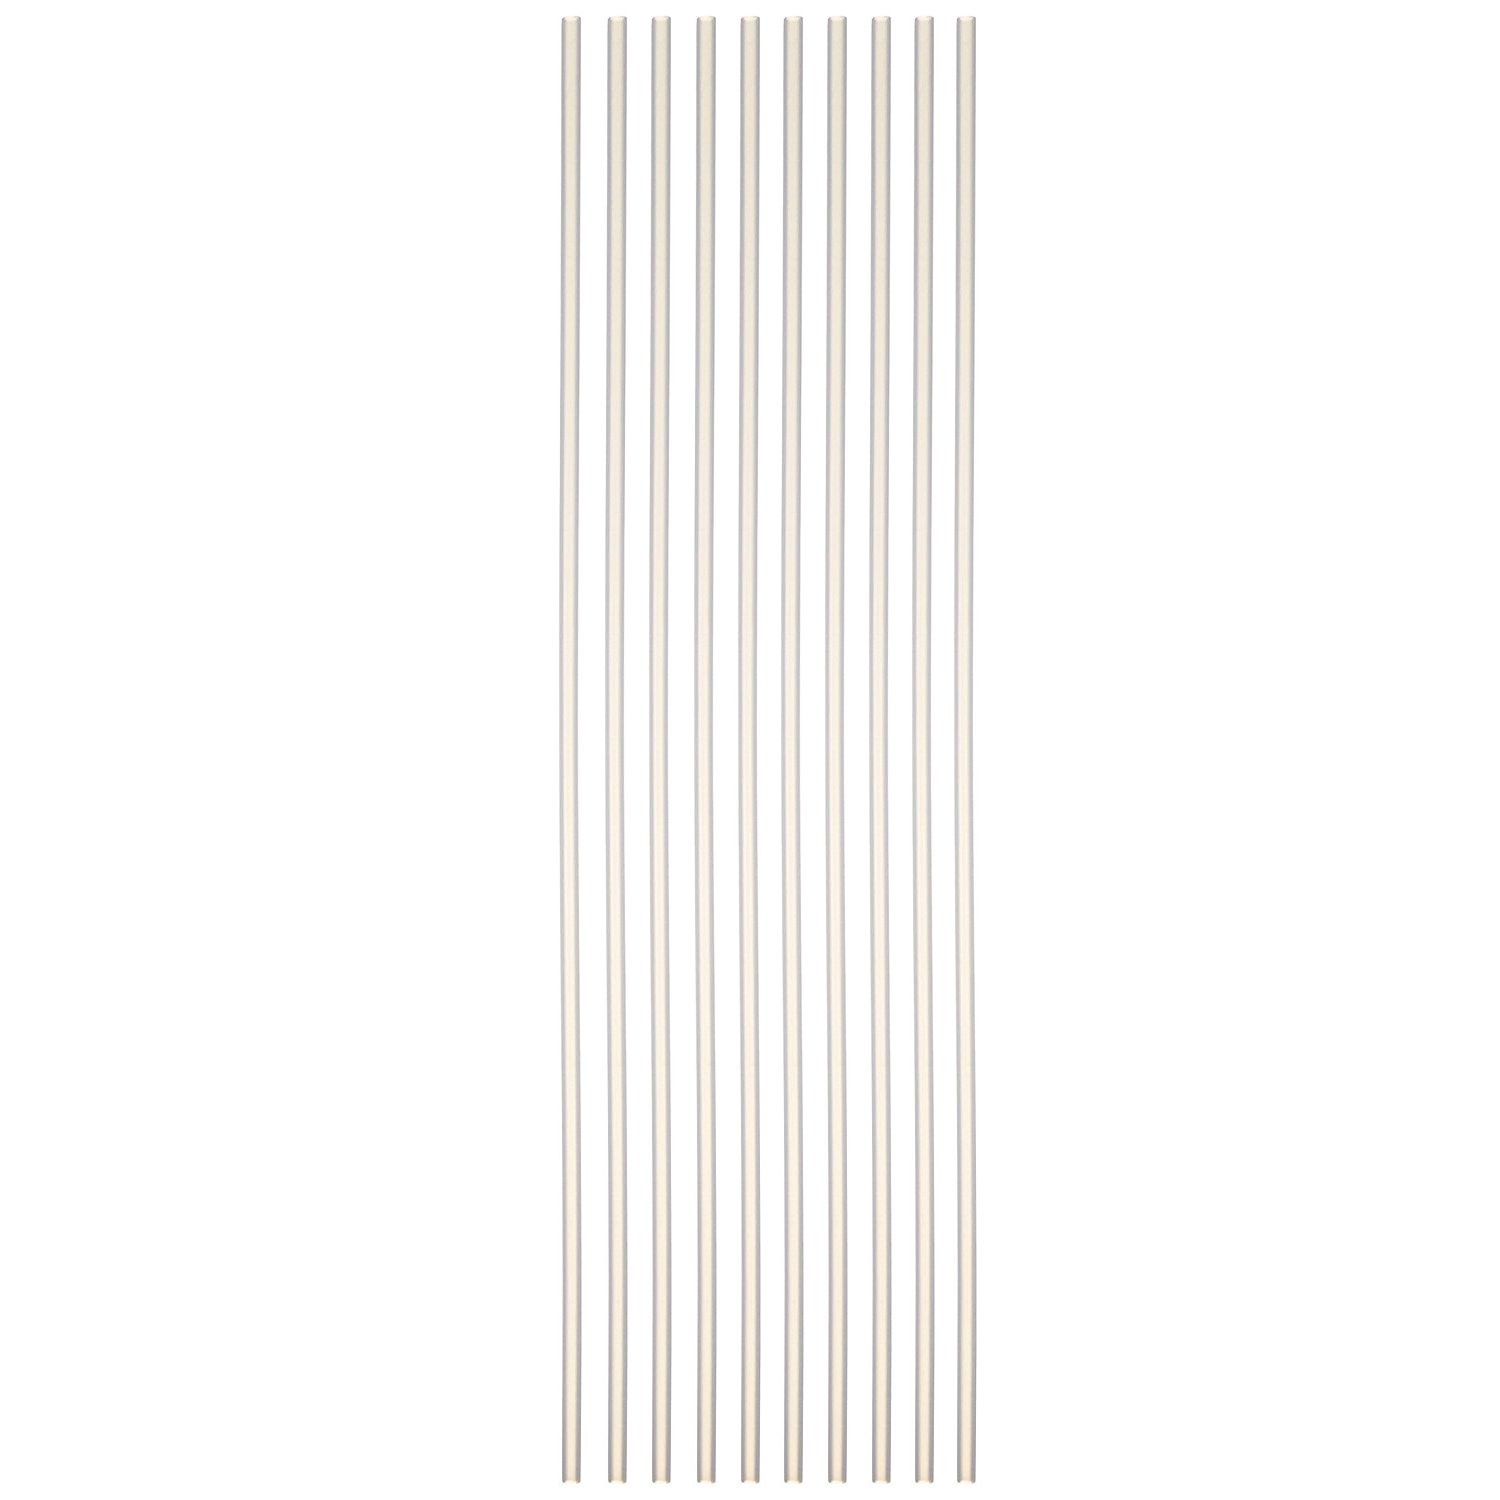 Sammons Preston Reusable 18'' Drinking Straws, Pack of 10 Flexible Long Straws with 3/16'' Diameter Ideal for Drinking from Wine Bottles & Tall Cups, Dishwasher Safe Straws for Smoothies & Thick Liquids by Sammons Preston